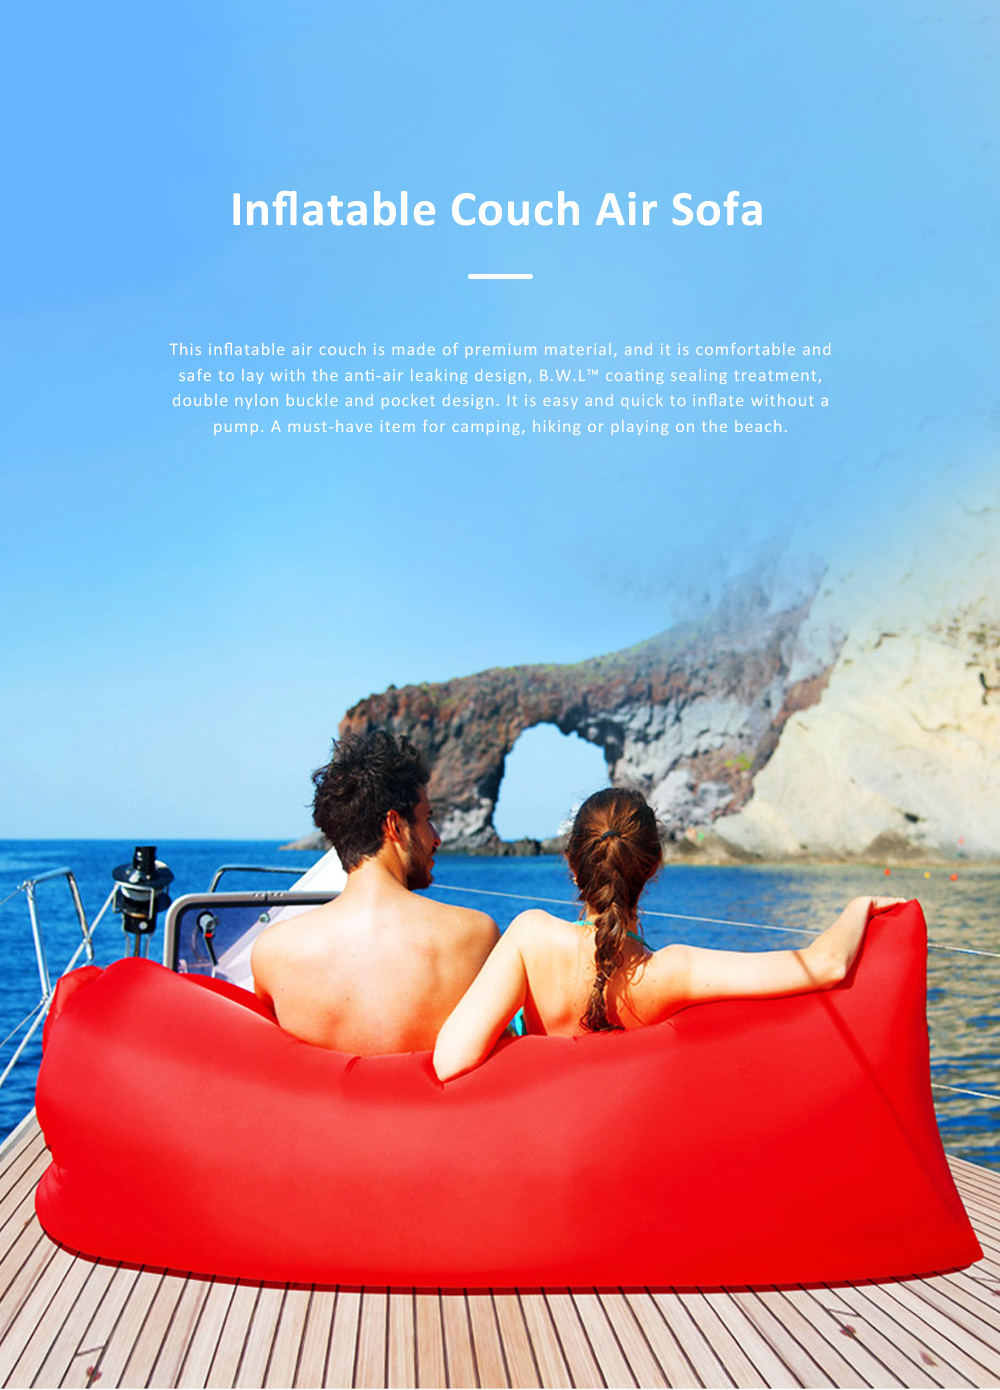 Inflatable Air Sofa Nylon Anti-Air Leaking Couch Convenient Sleeping Sofa Bag with Pocket for Outdoor Camping Travel Beach 0